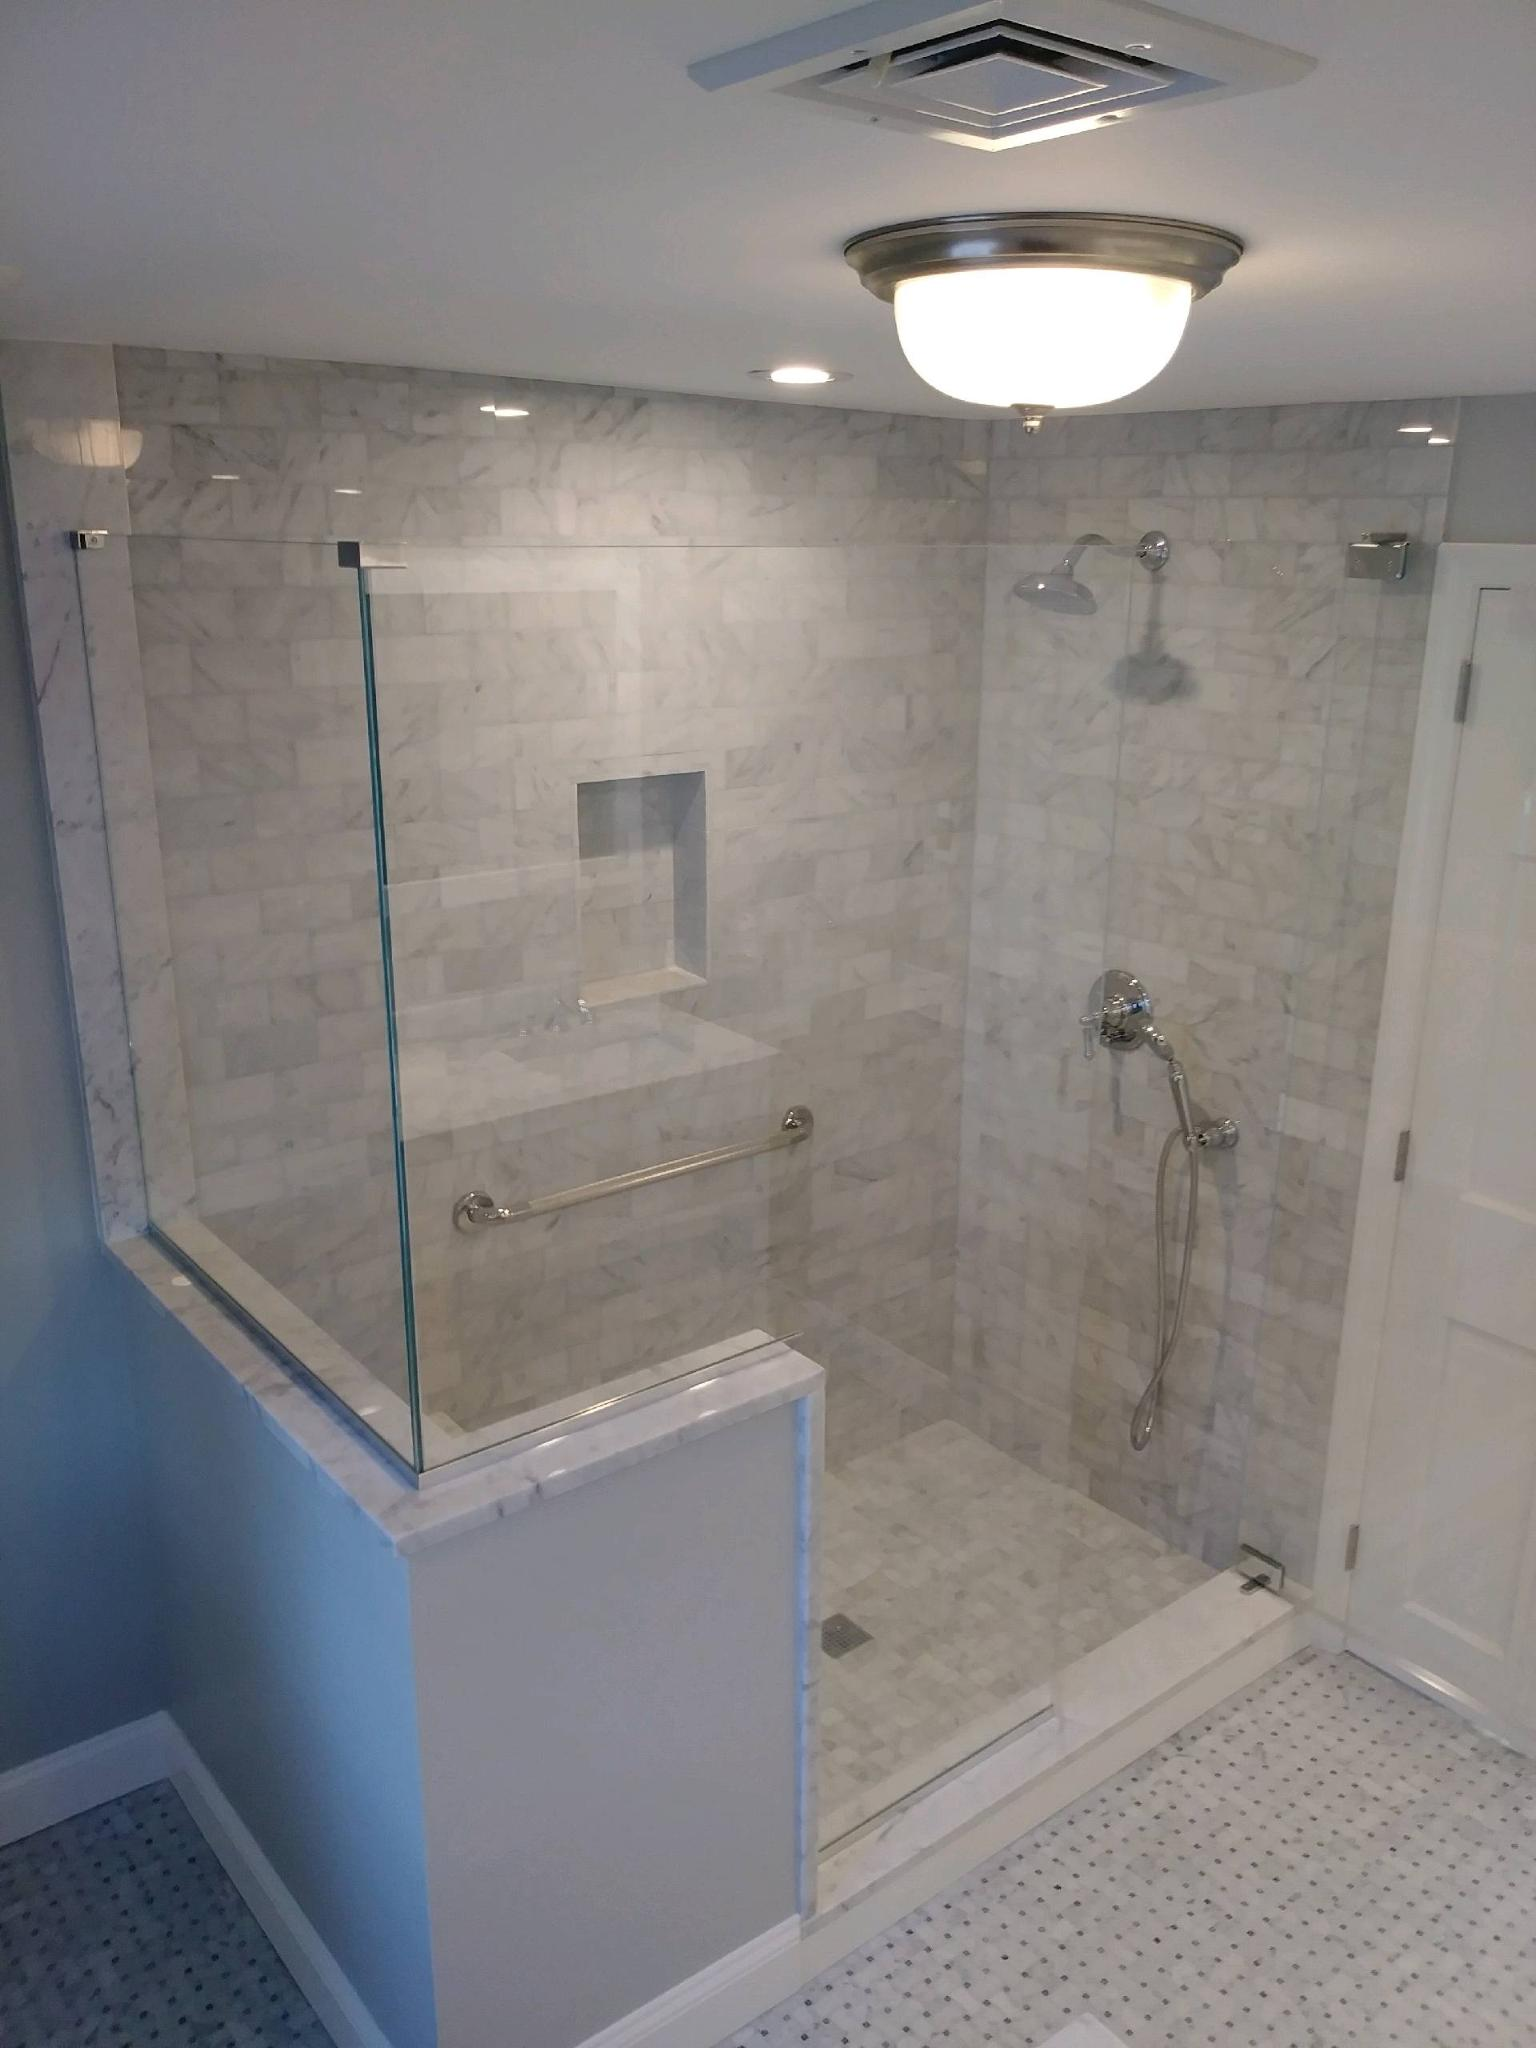 Tiled shower2.jpg